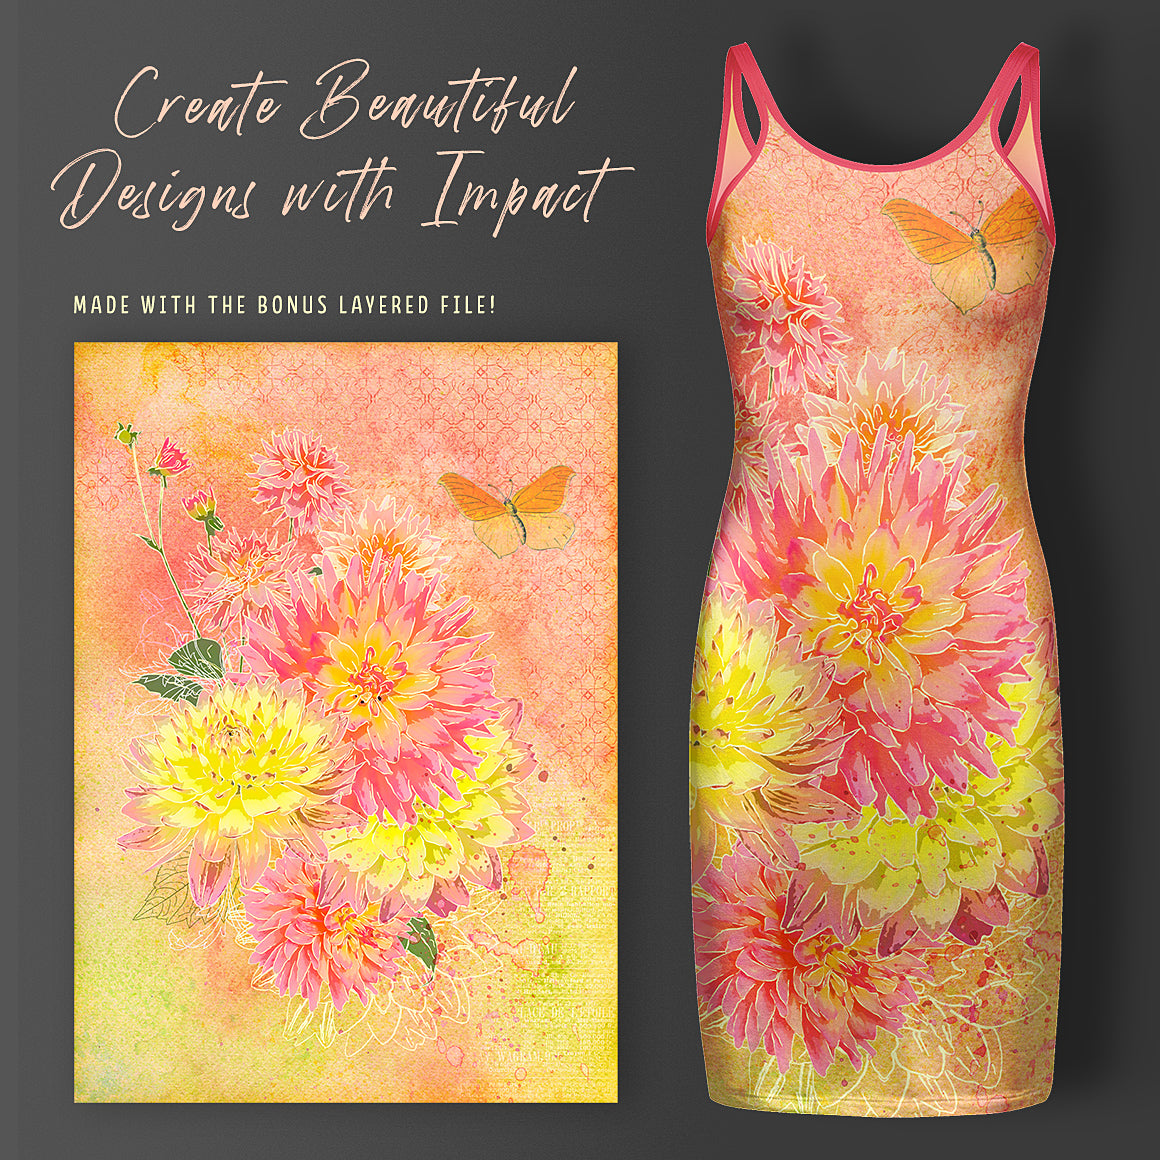 Photographic design on a dress mockup using the example layered file in the Complete Inspirational Textures and Elements Collection.